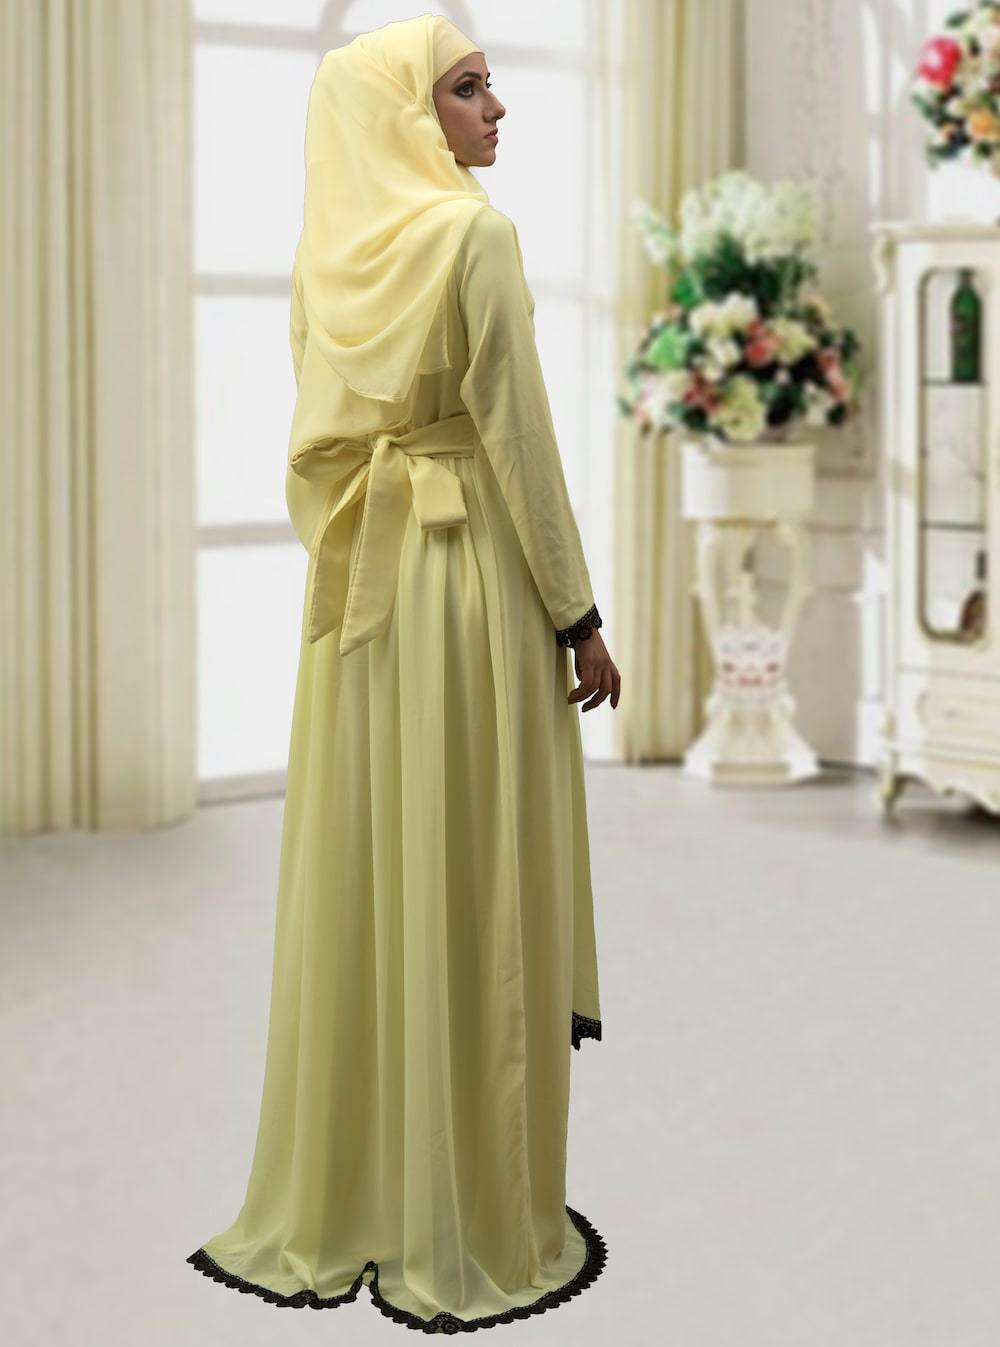 Lemon Yellow Modest Thread Work Islamic Dress MYPF1310